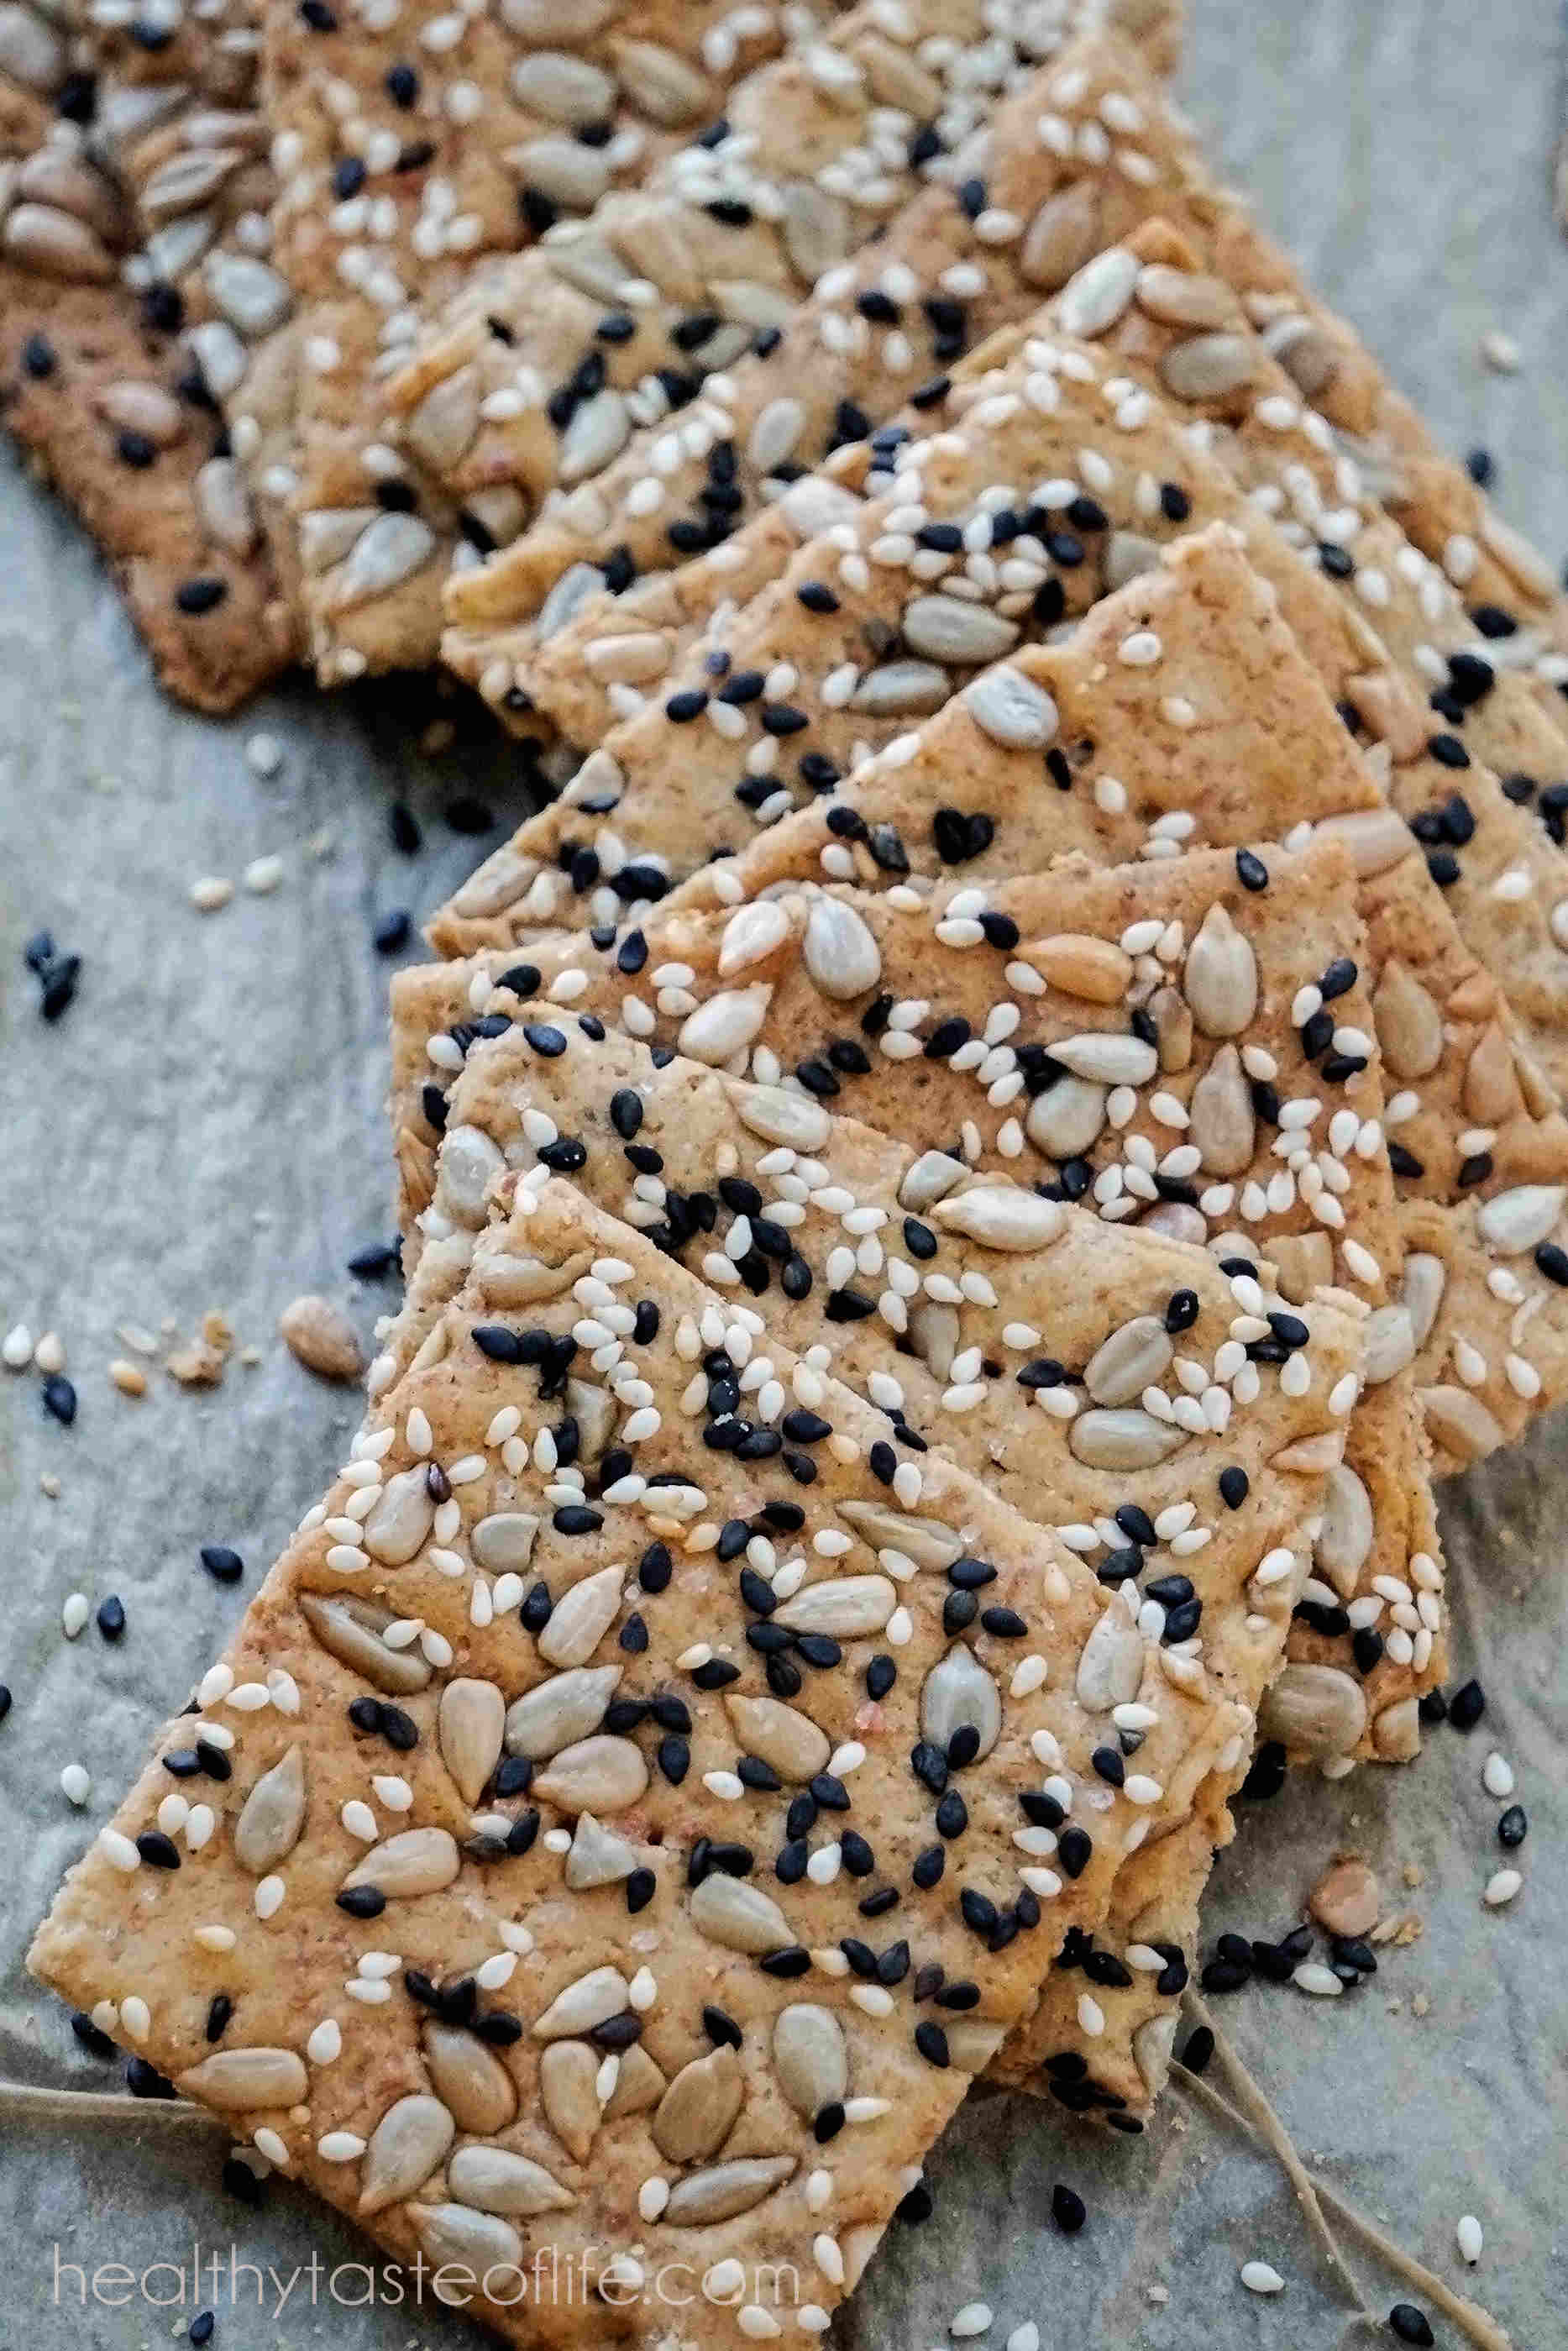 This homemade gluten free crackers recipe uses a mix of gluten free flours including rice flour and a variety of seeds.